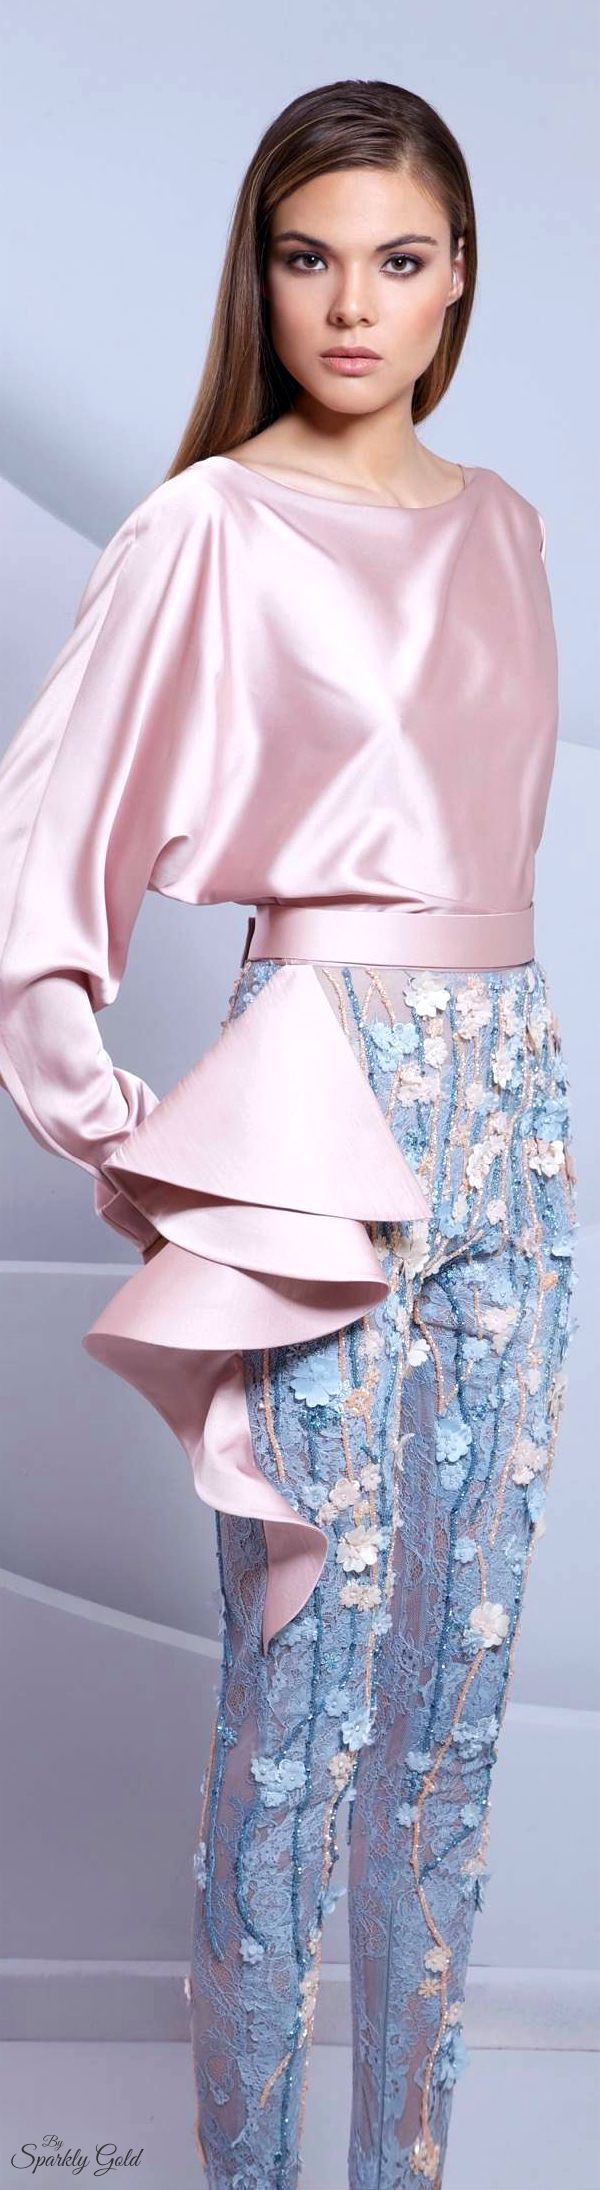 Rose Quartz and Serenity blue by Tarek Sinno - Spring/Summer 2015 - soft, pastel palette and styling. The pants are brilliant.